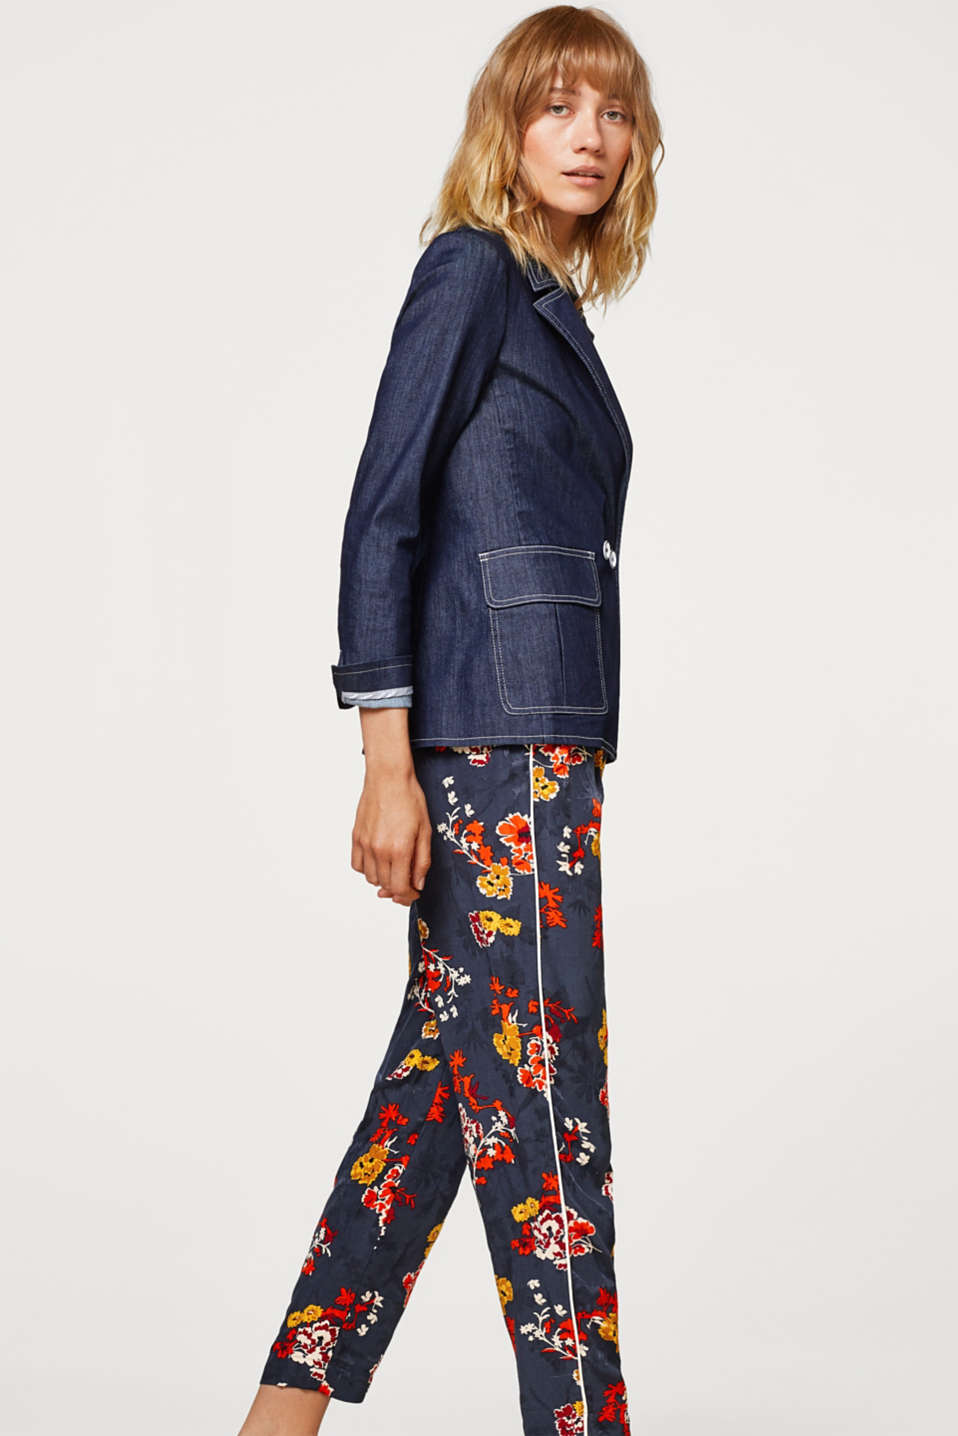 Floral jacquard trousers in a pyjama style